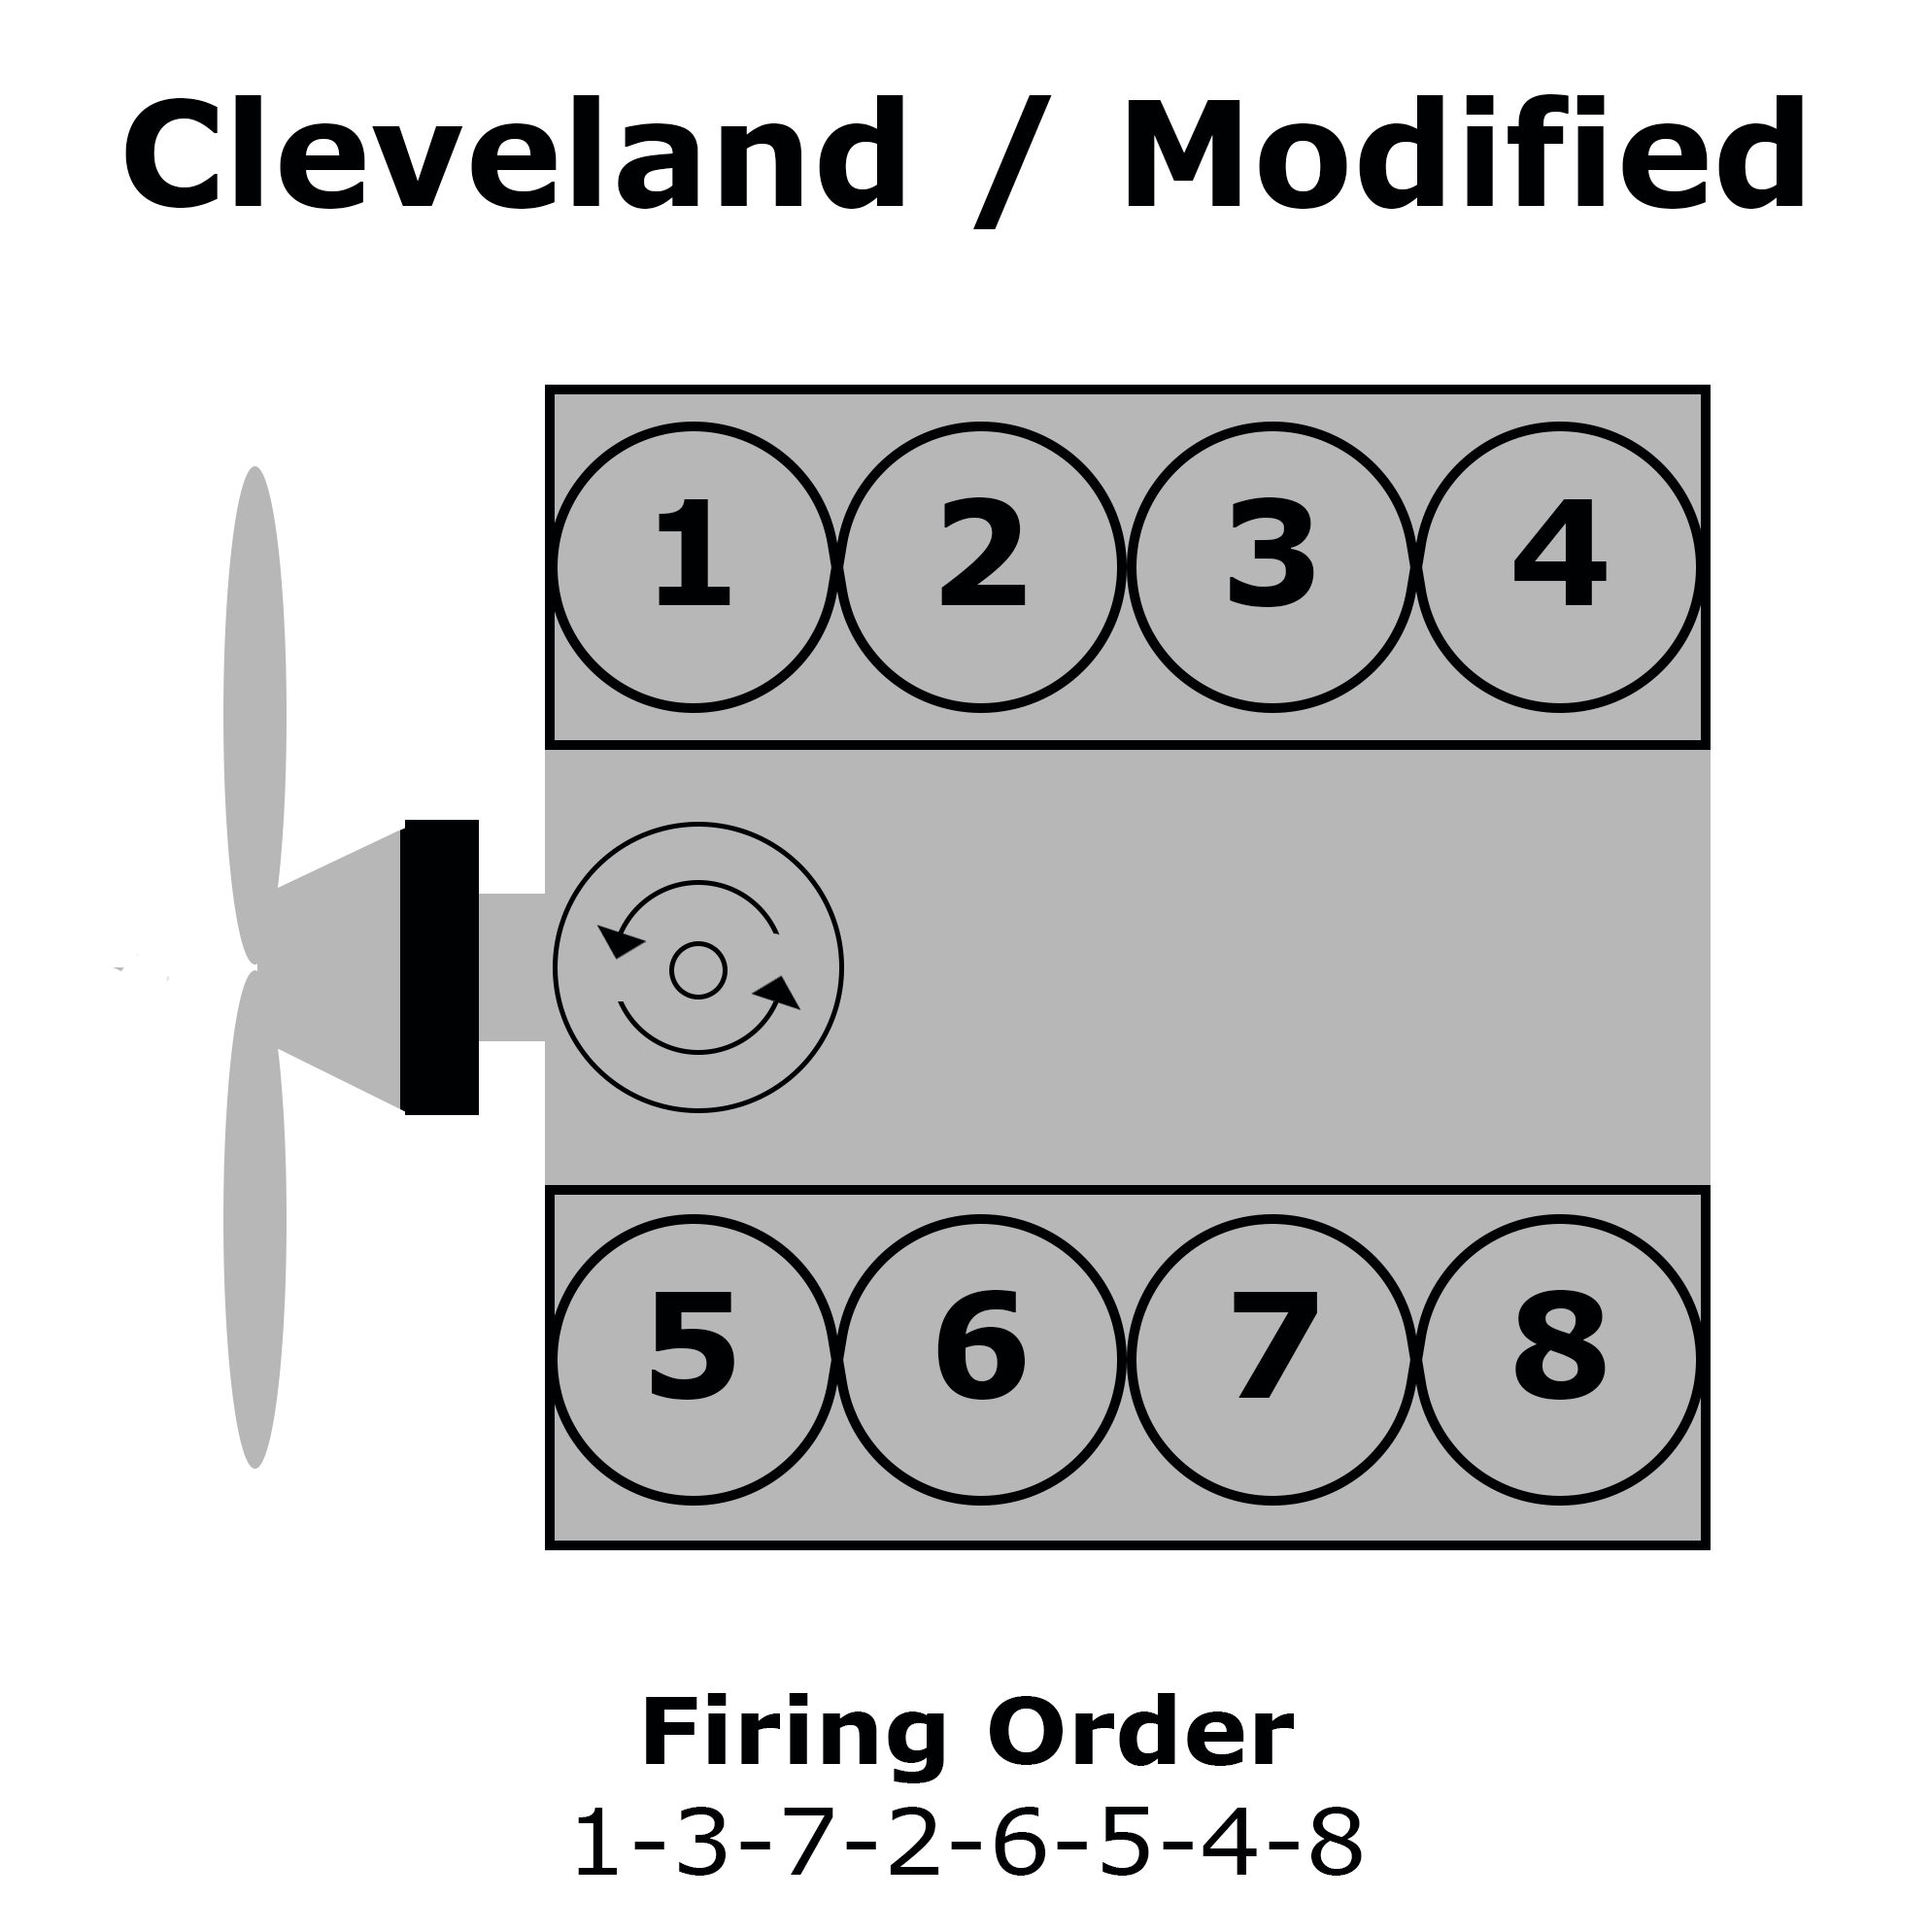 Ford Cleveland & Modified Firing Order